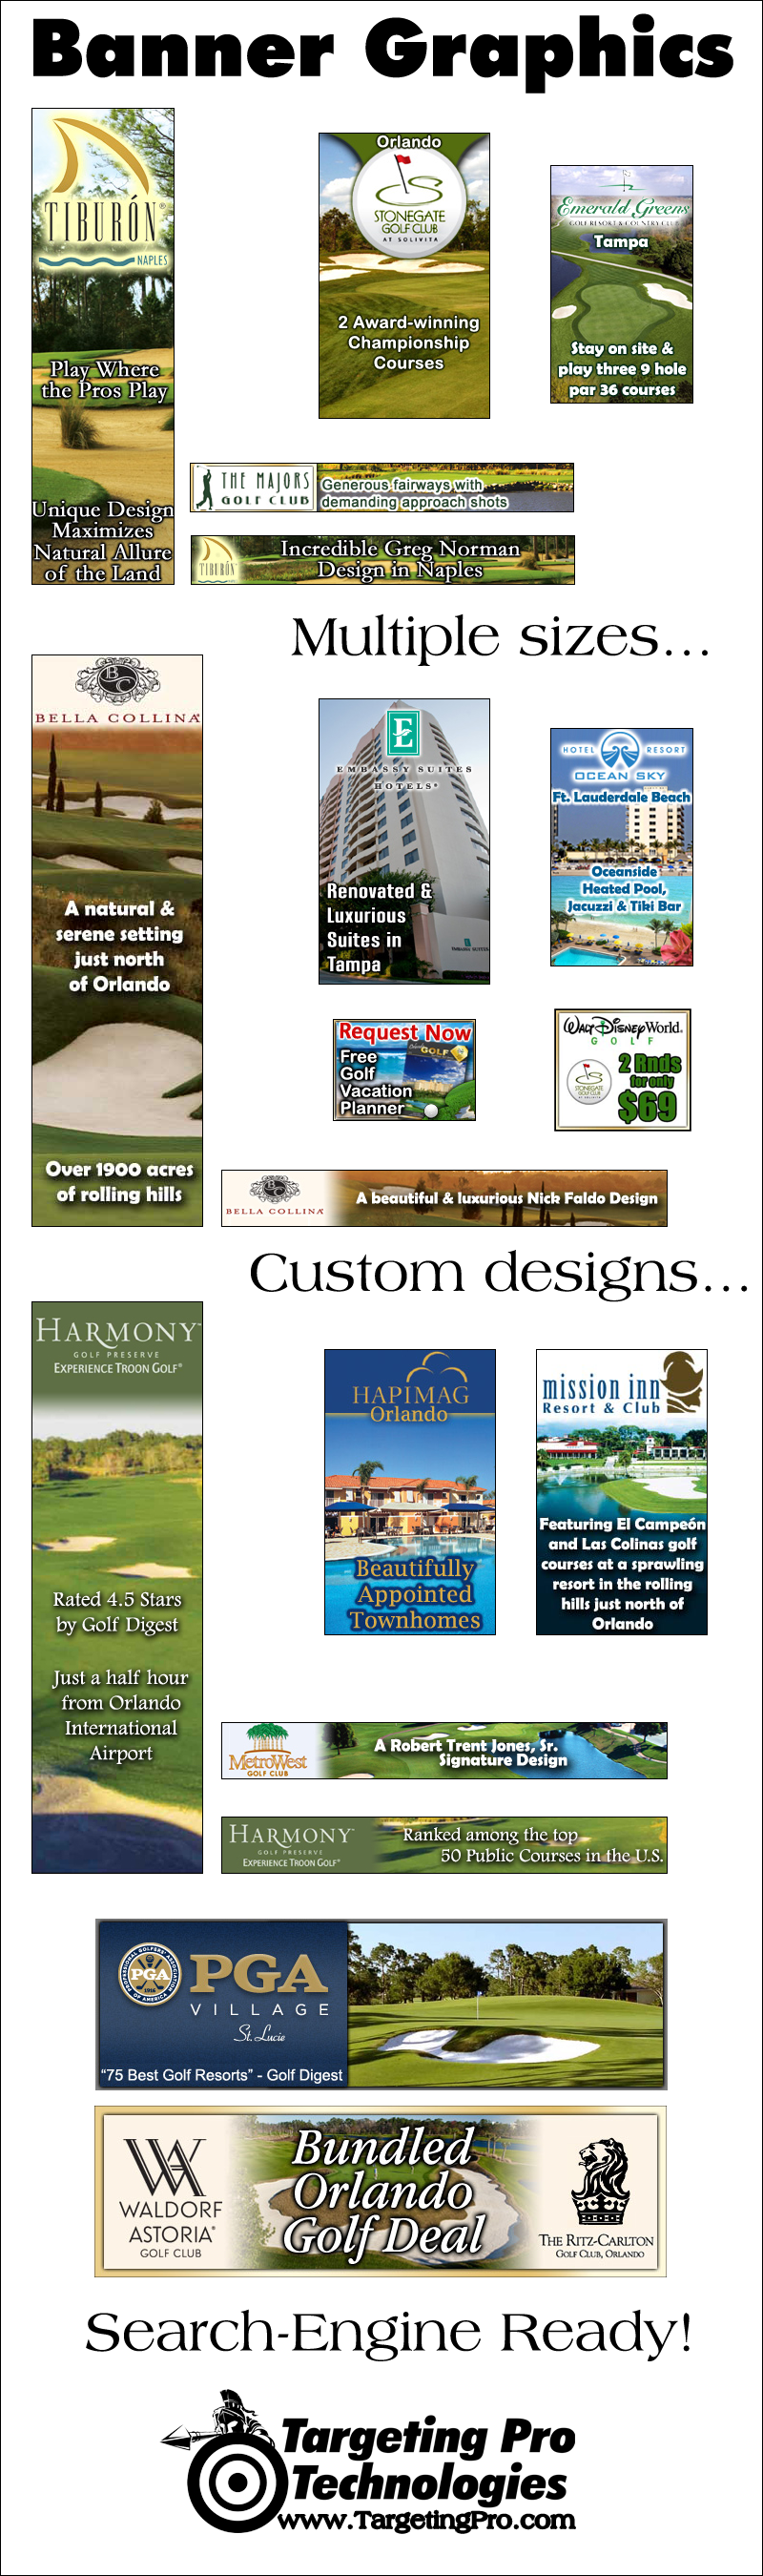 Graphic Design Professional Website Graphics Designer Services Travel Banners